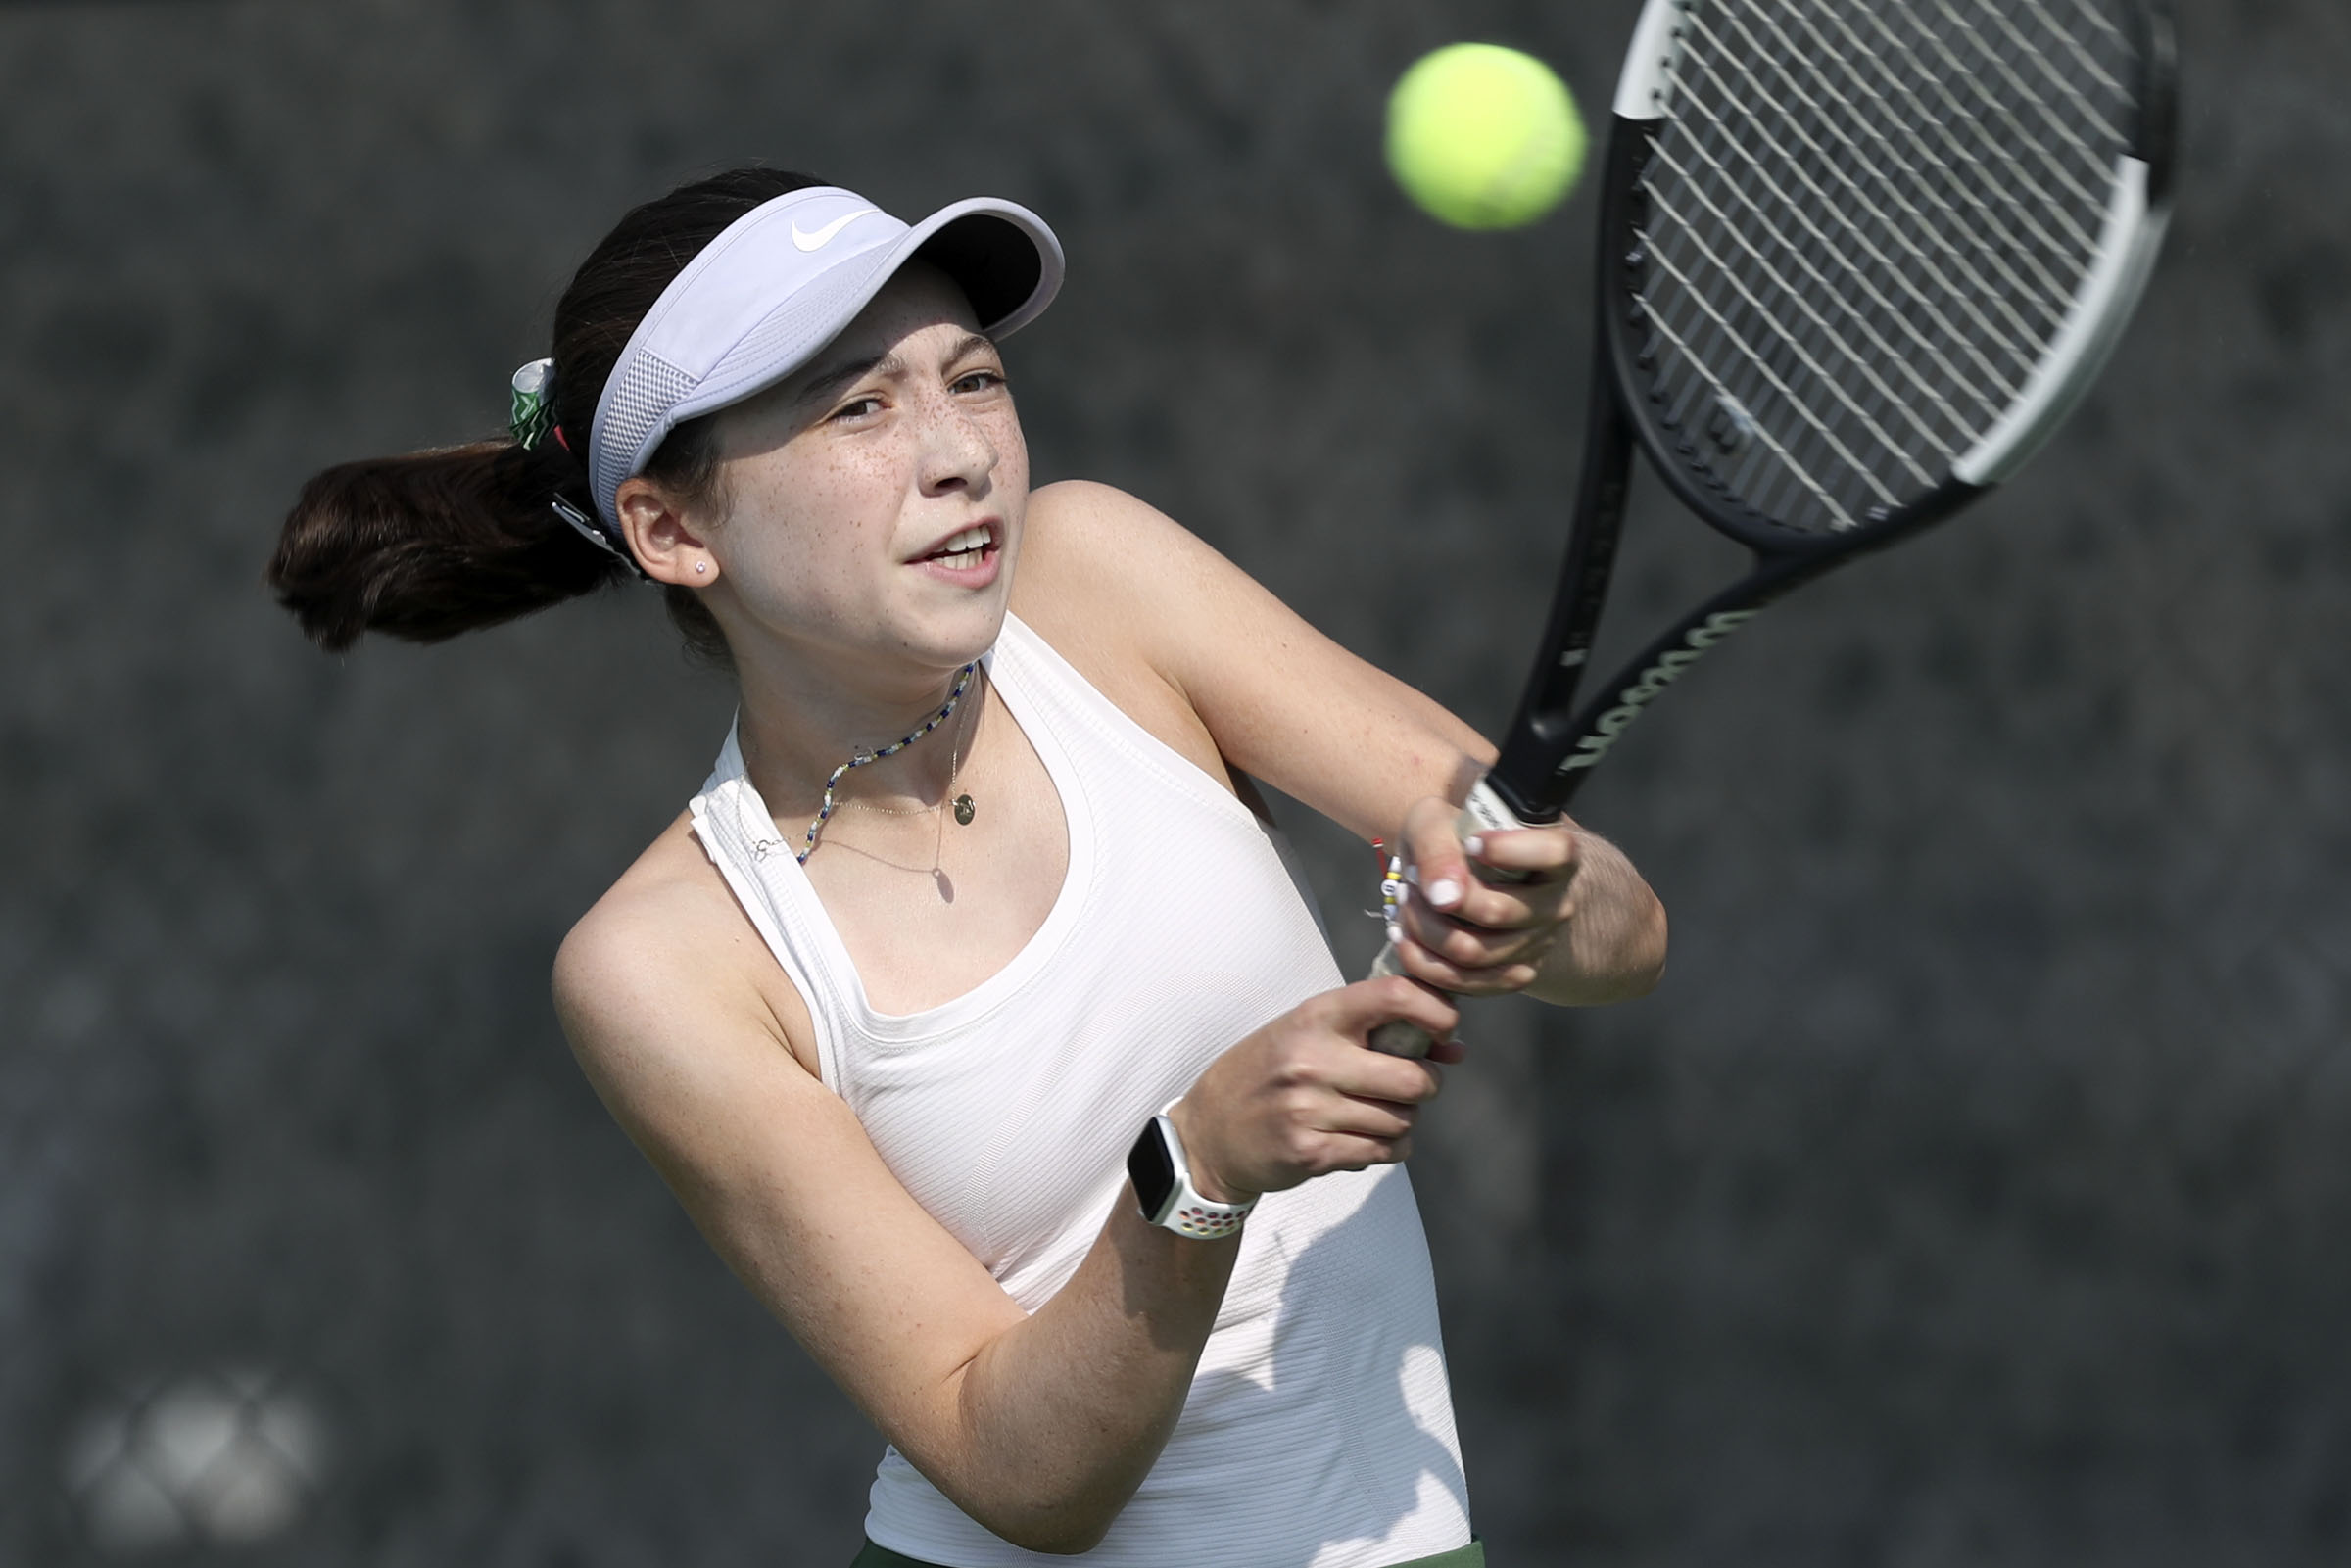 Rowland Hall's Lucy Wallin competes in the first singles finals of the 3A girls tennis state championship against Waterford's Sophie Christensen at Liberty Park in Salt Lake City on Saturday, Oct. 3, 2020. Wallin won.